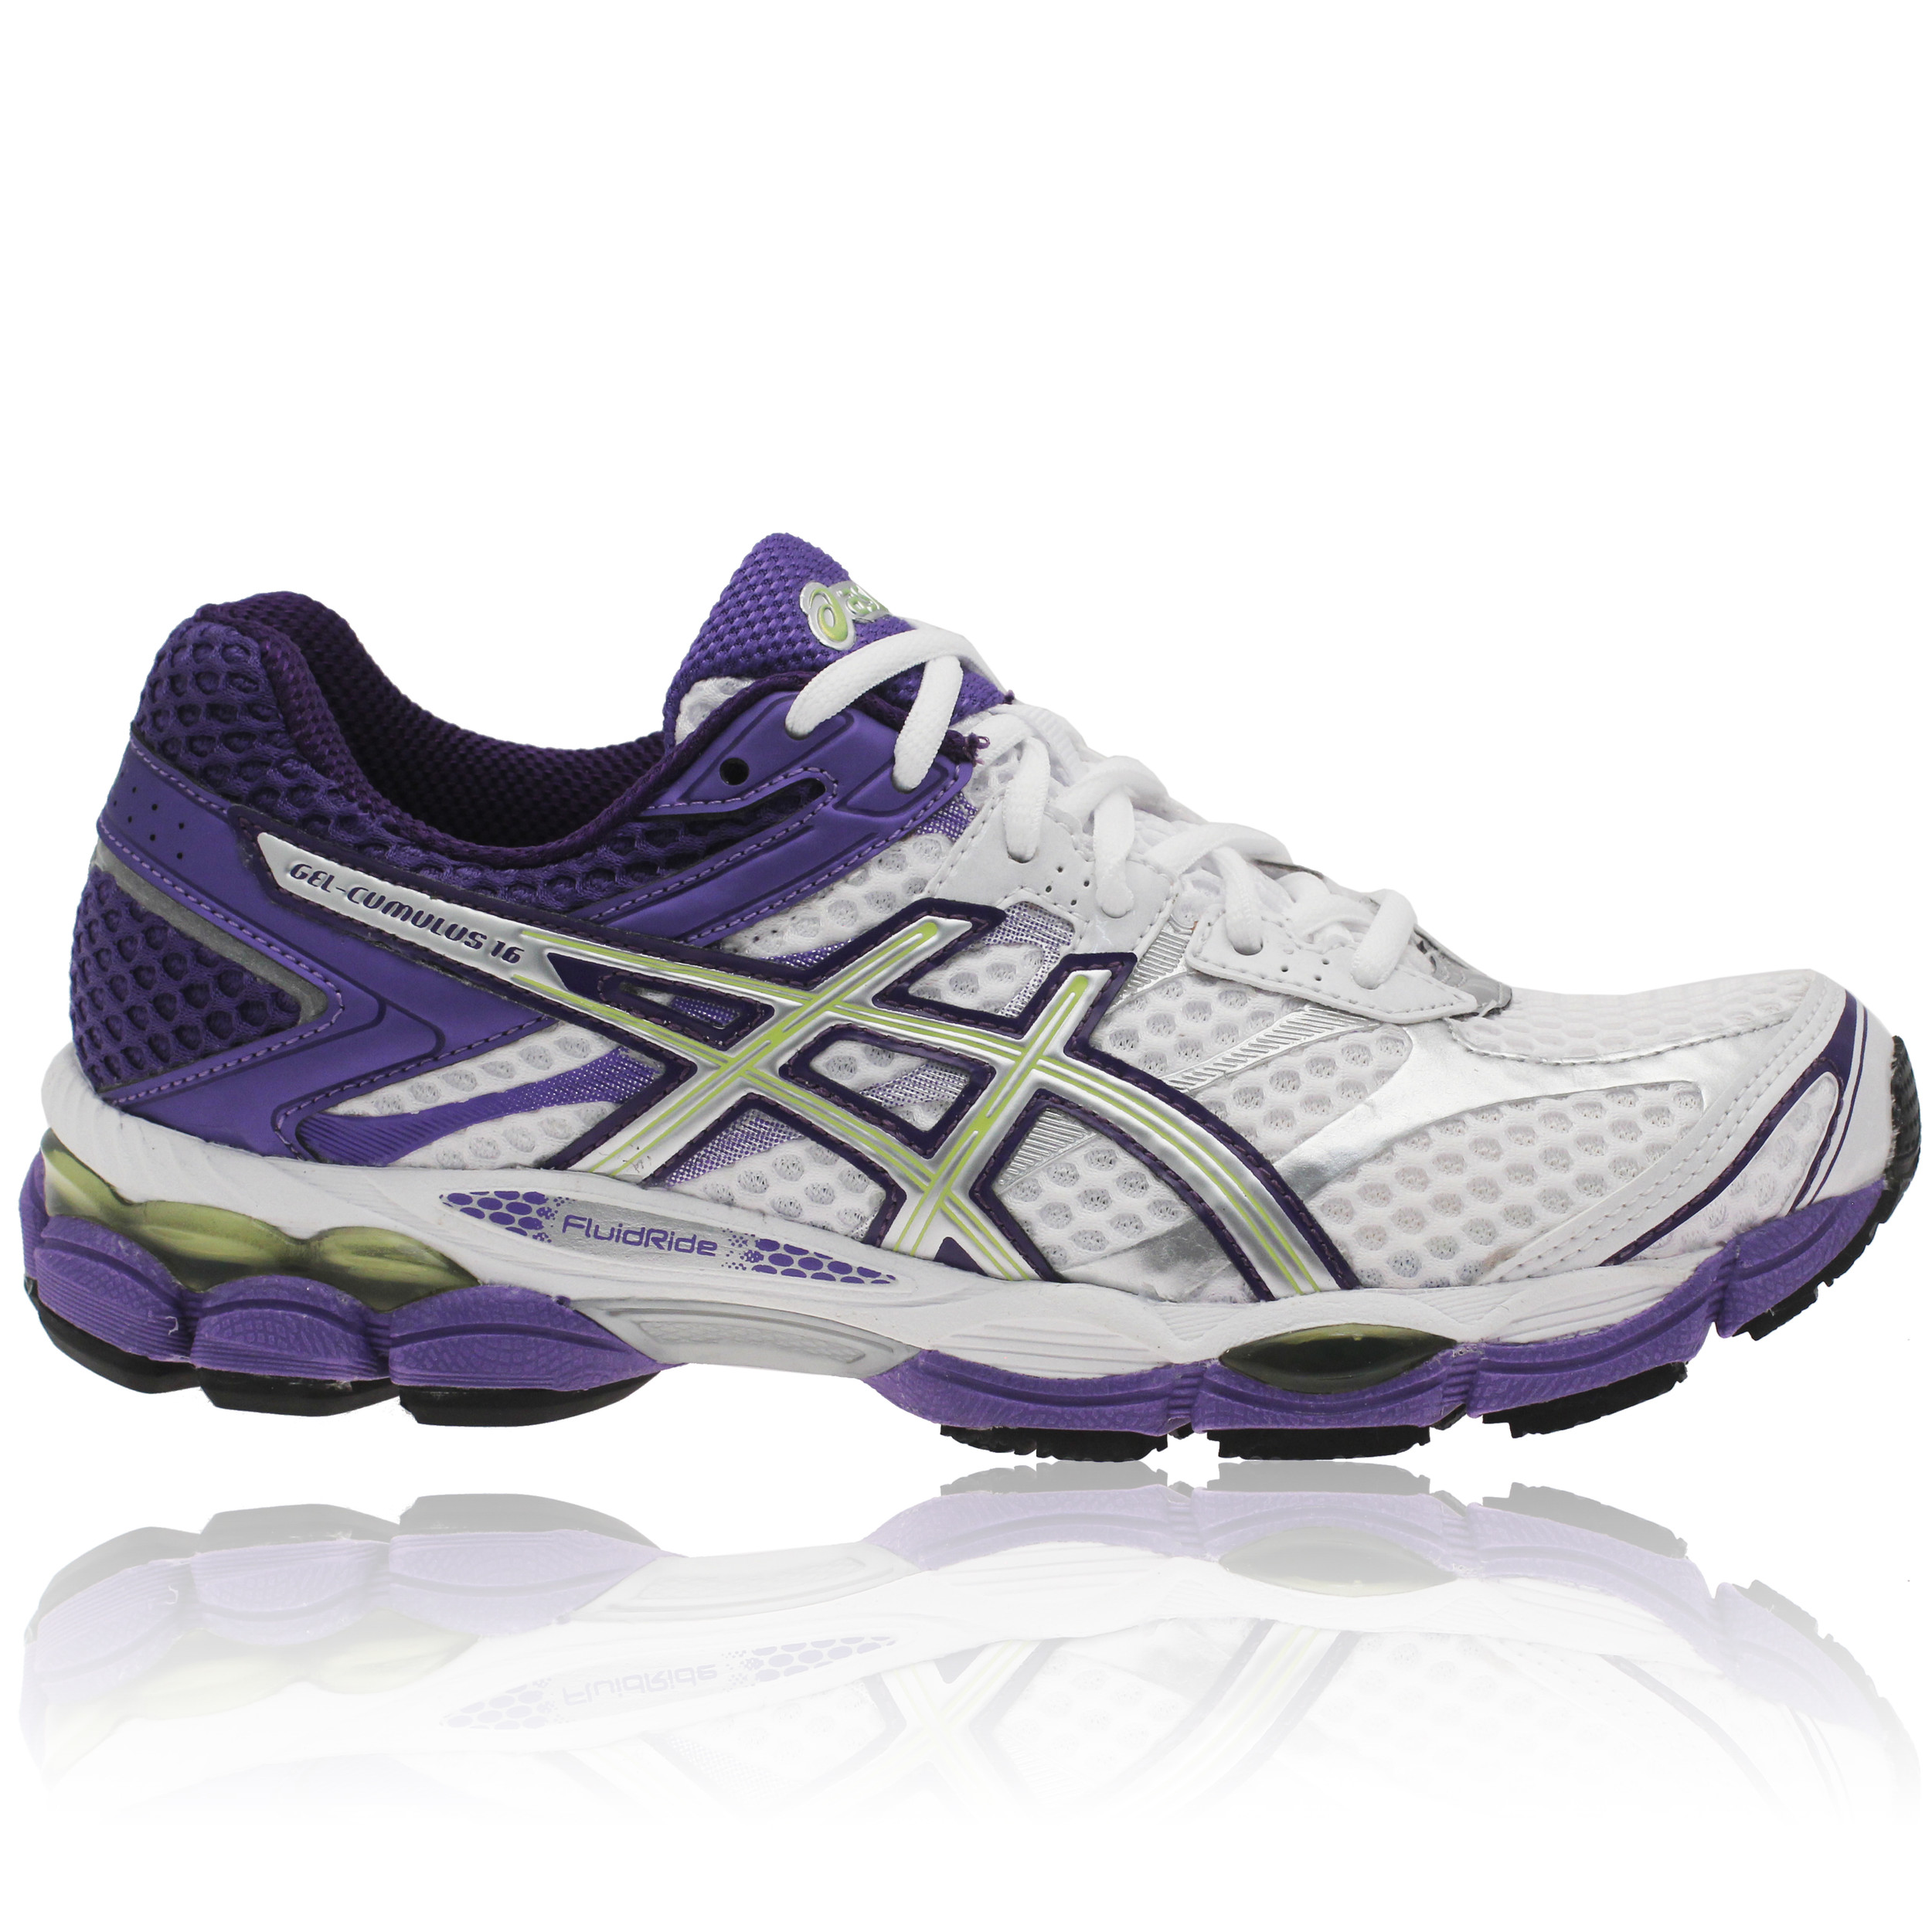 asics gel cumulus 16 running shoes 28 images asics gel cumulus 16 lite show running shoes. Black Bedroom Furniture Sets. Home Design Ideas